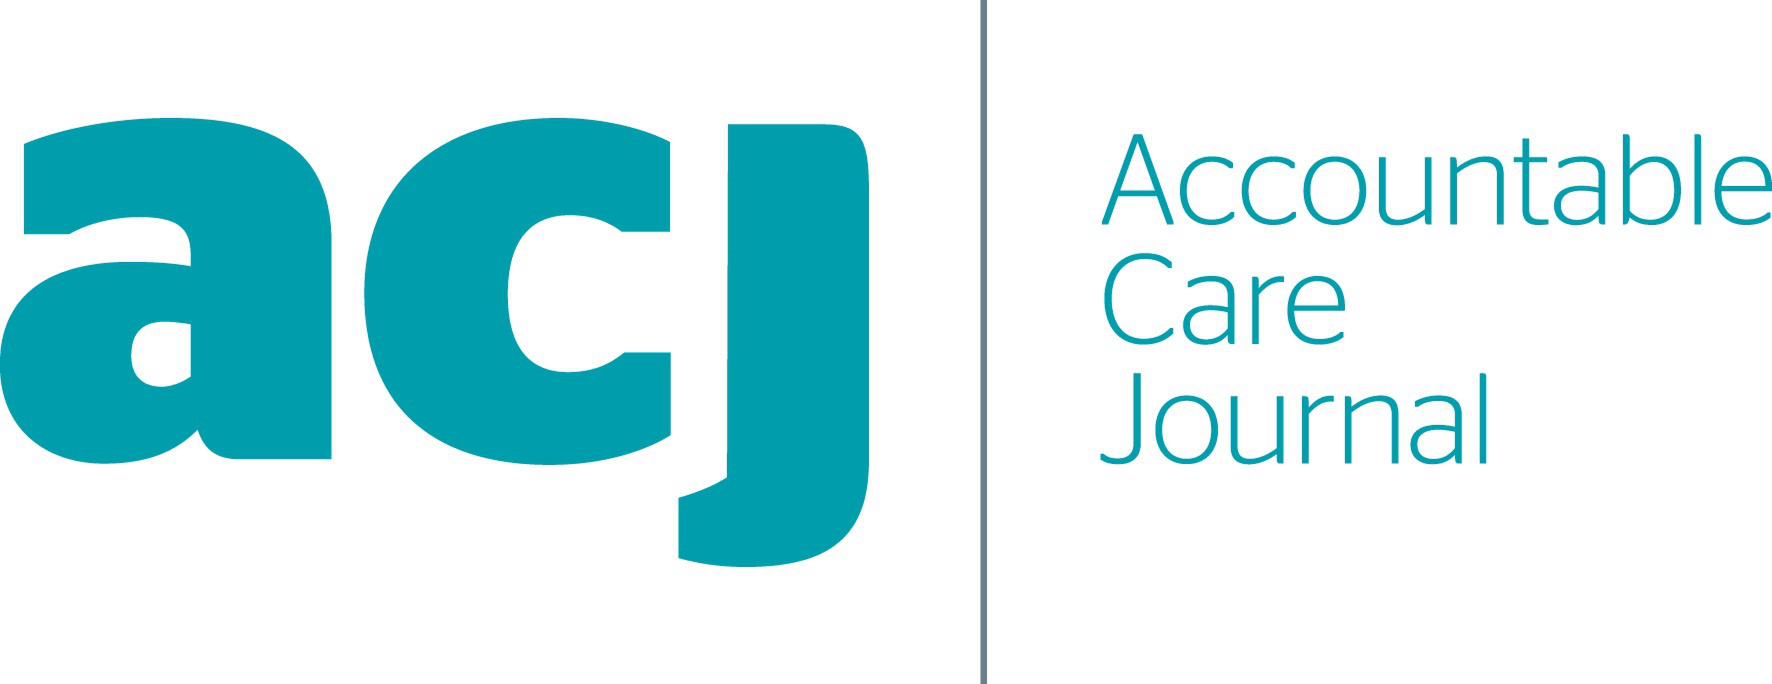 Accountable Care Journal